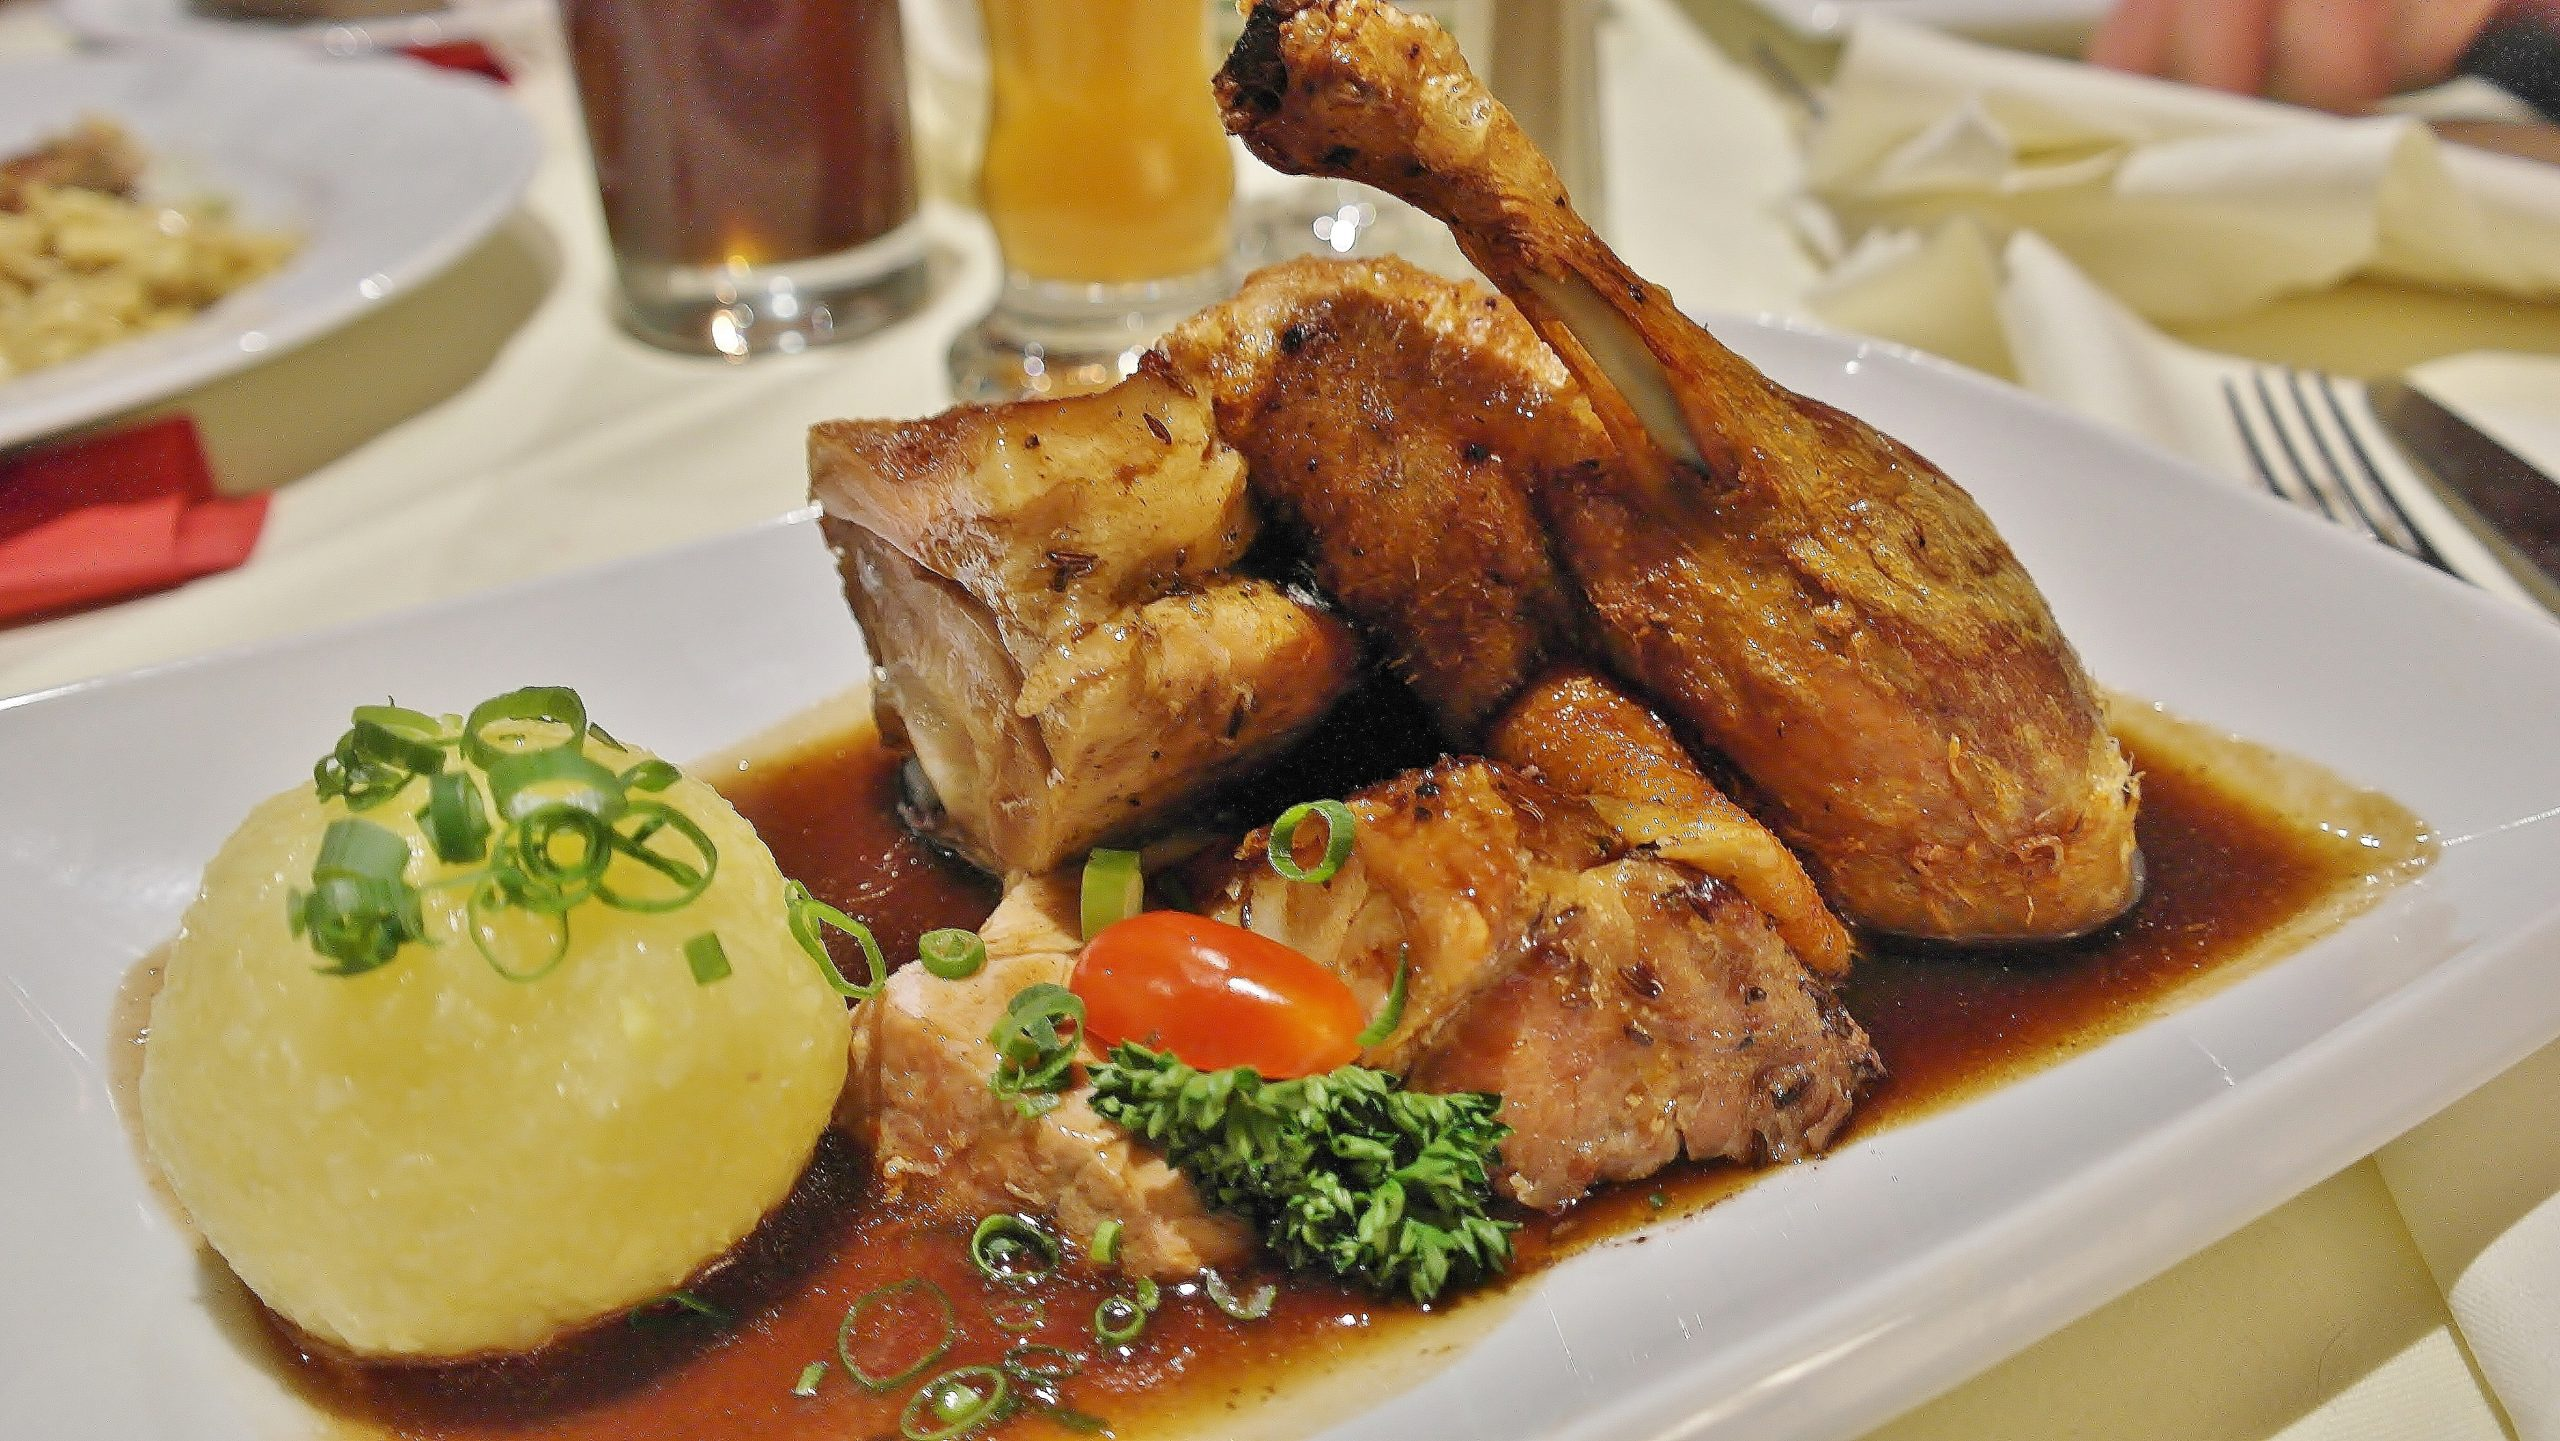 Every time is meal time. Come rain or sunshine, the food business will remain vibrant. www.businesstoday.co.ke